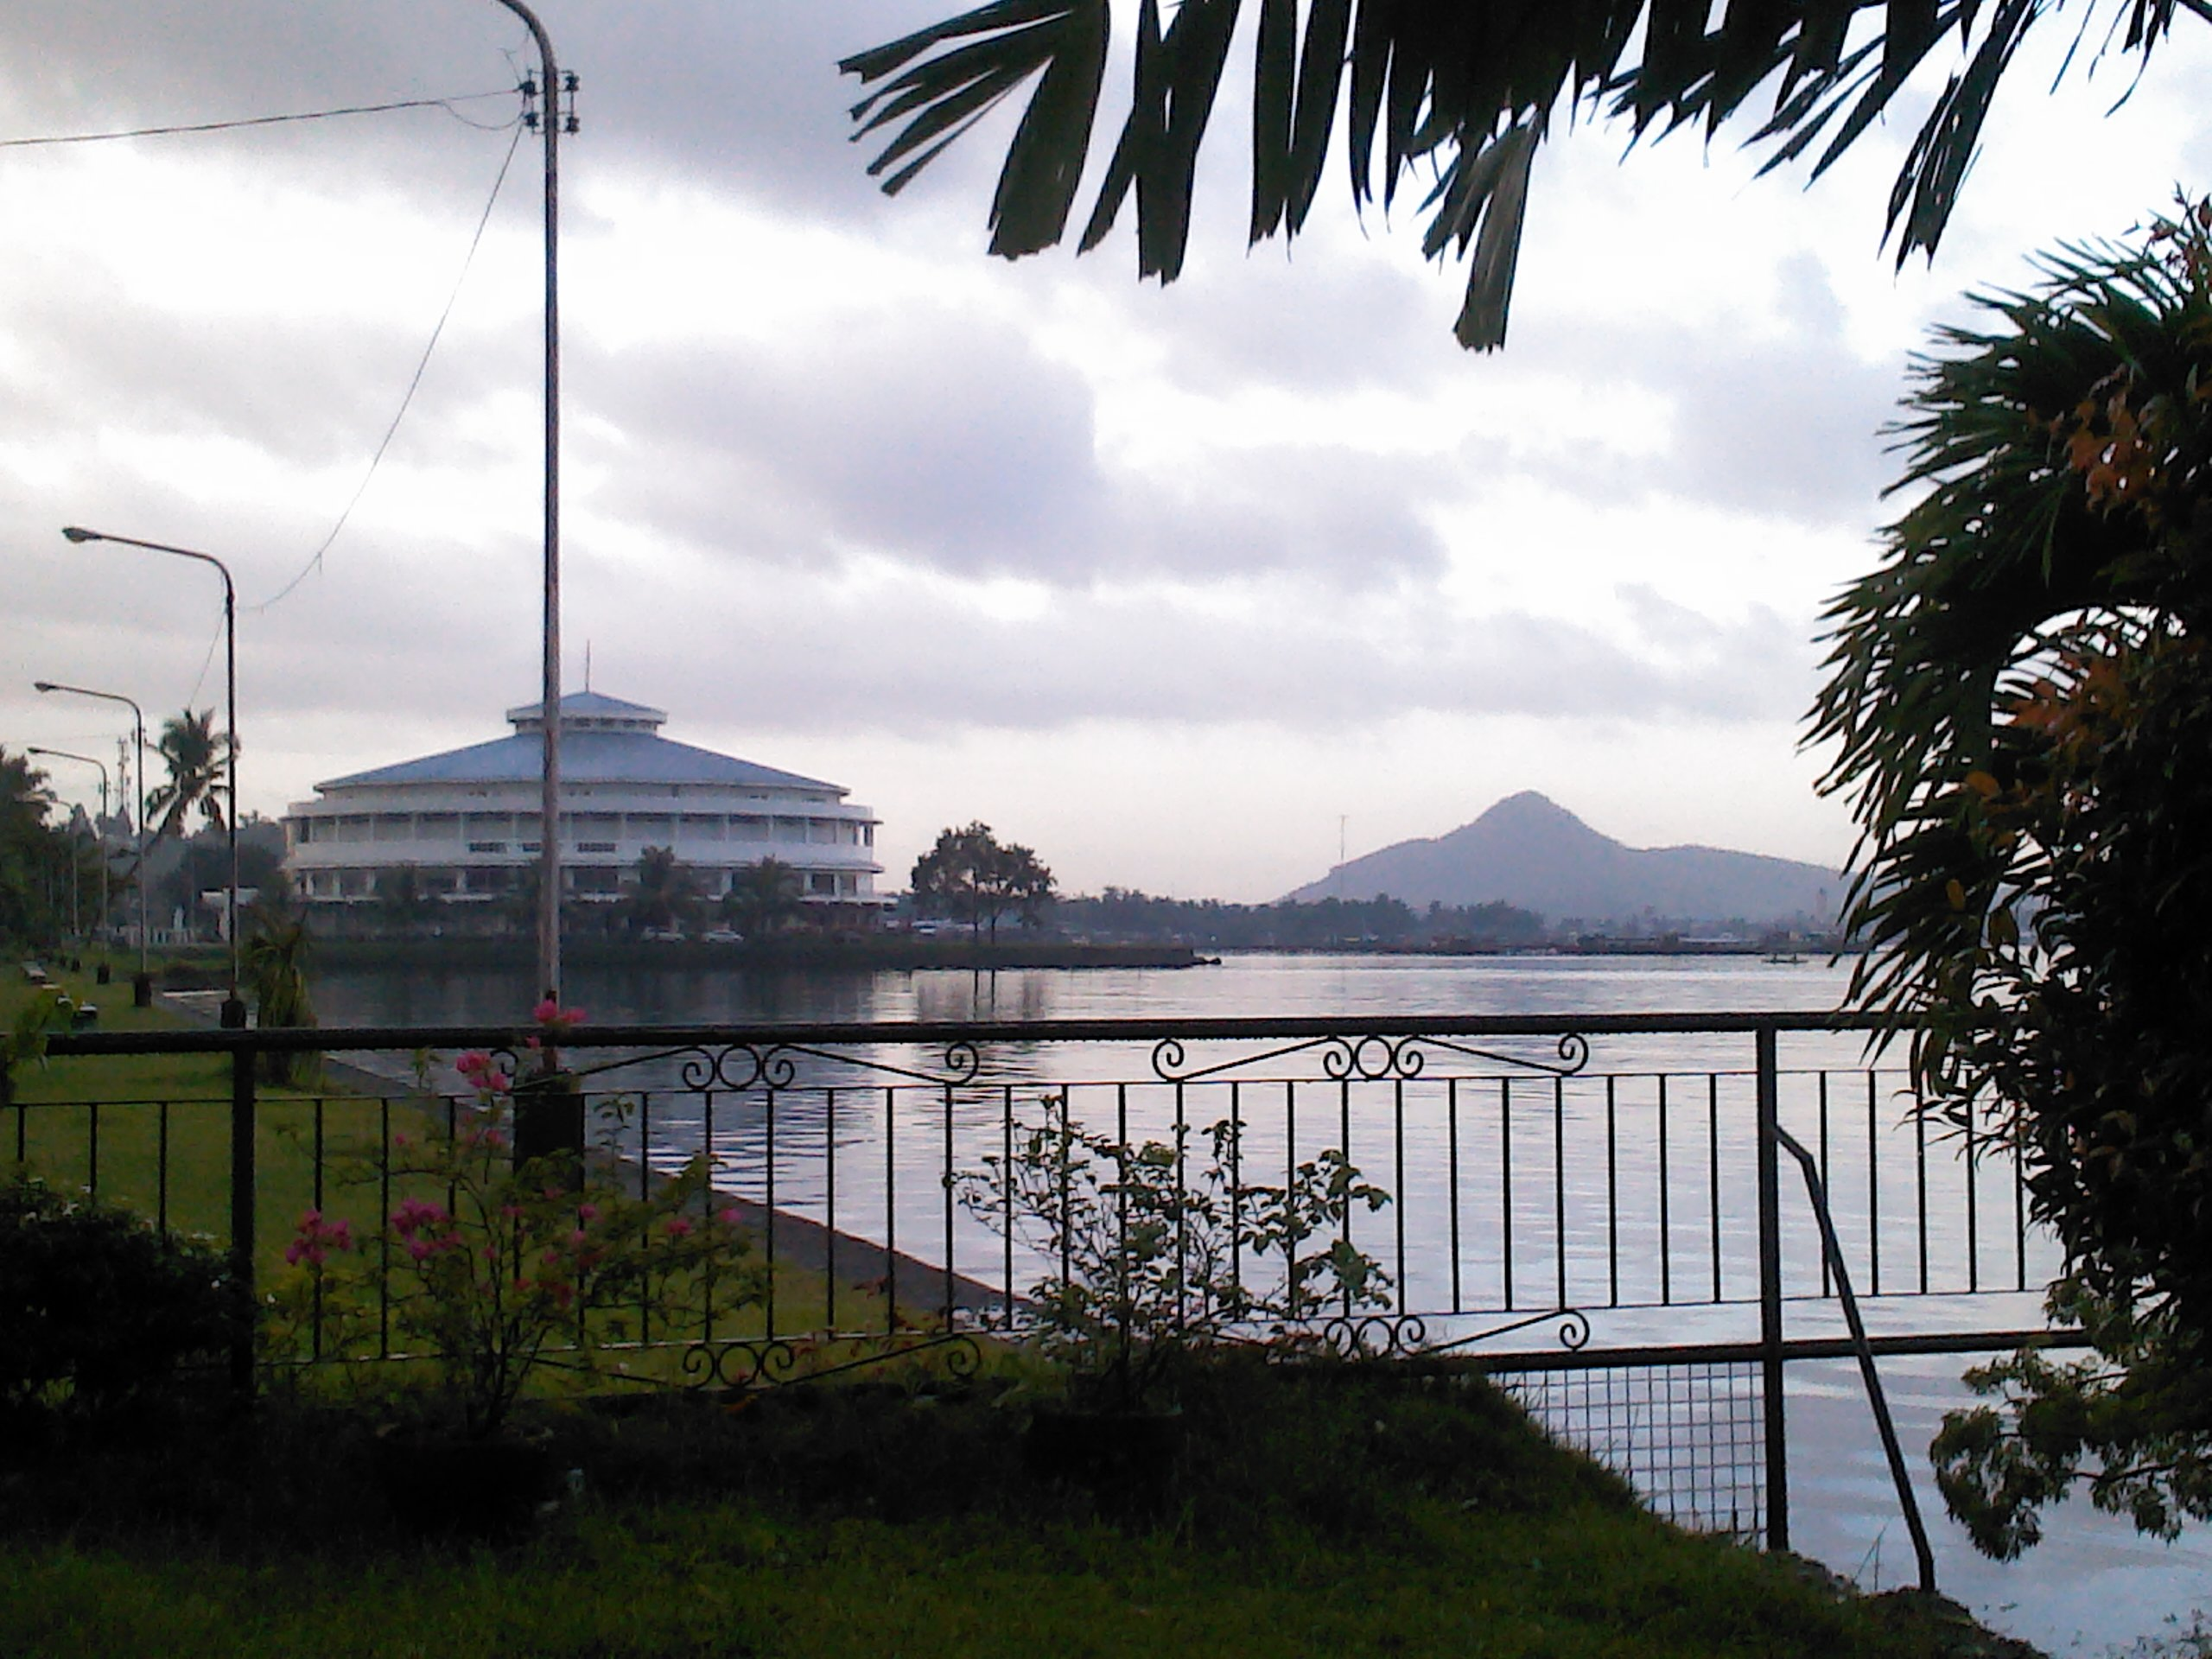 Tacloban City Convention Center (Astrodome)